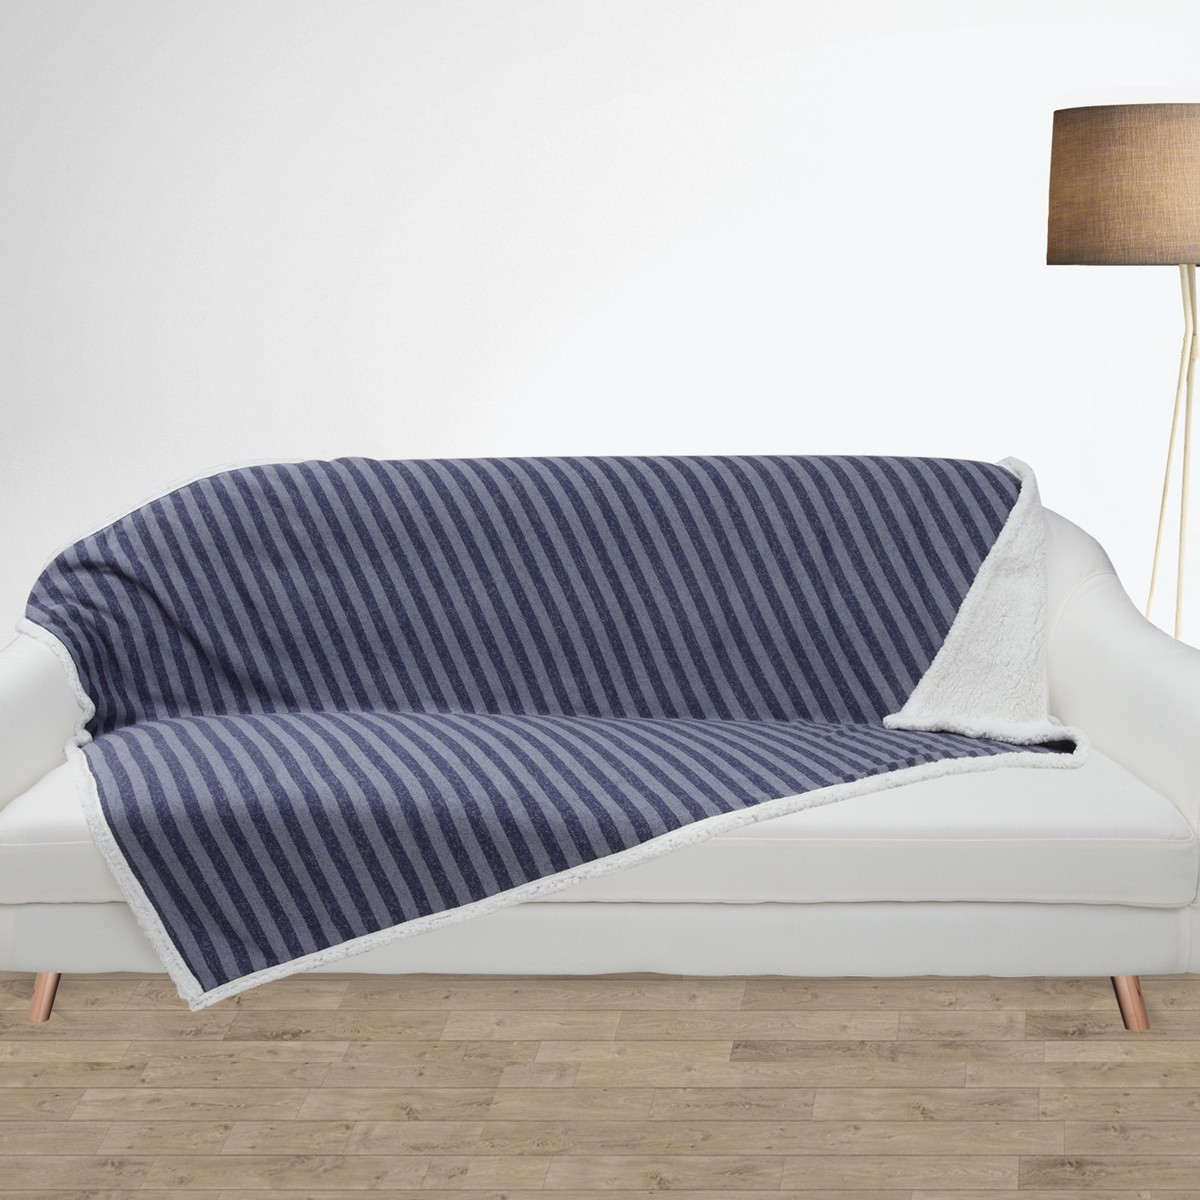 Κουβέρτα Καναπέ Das Home Blanket Line Fleece Sofa 410